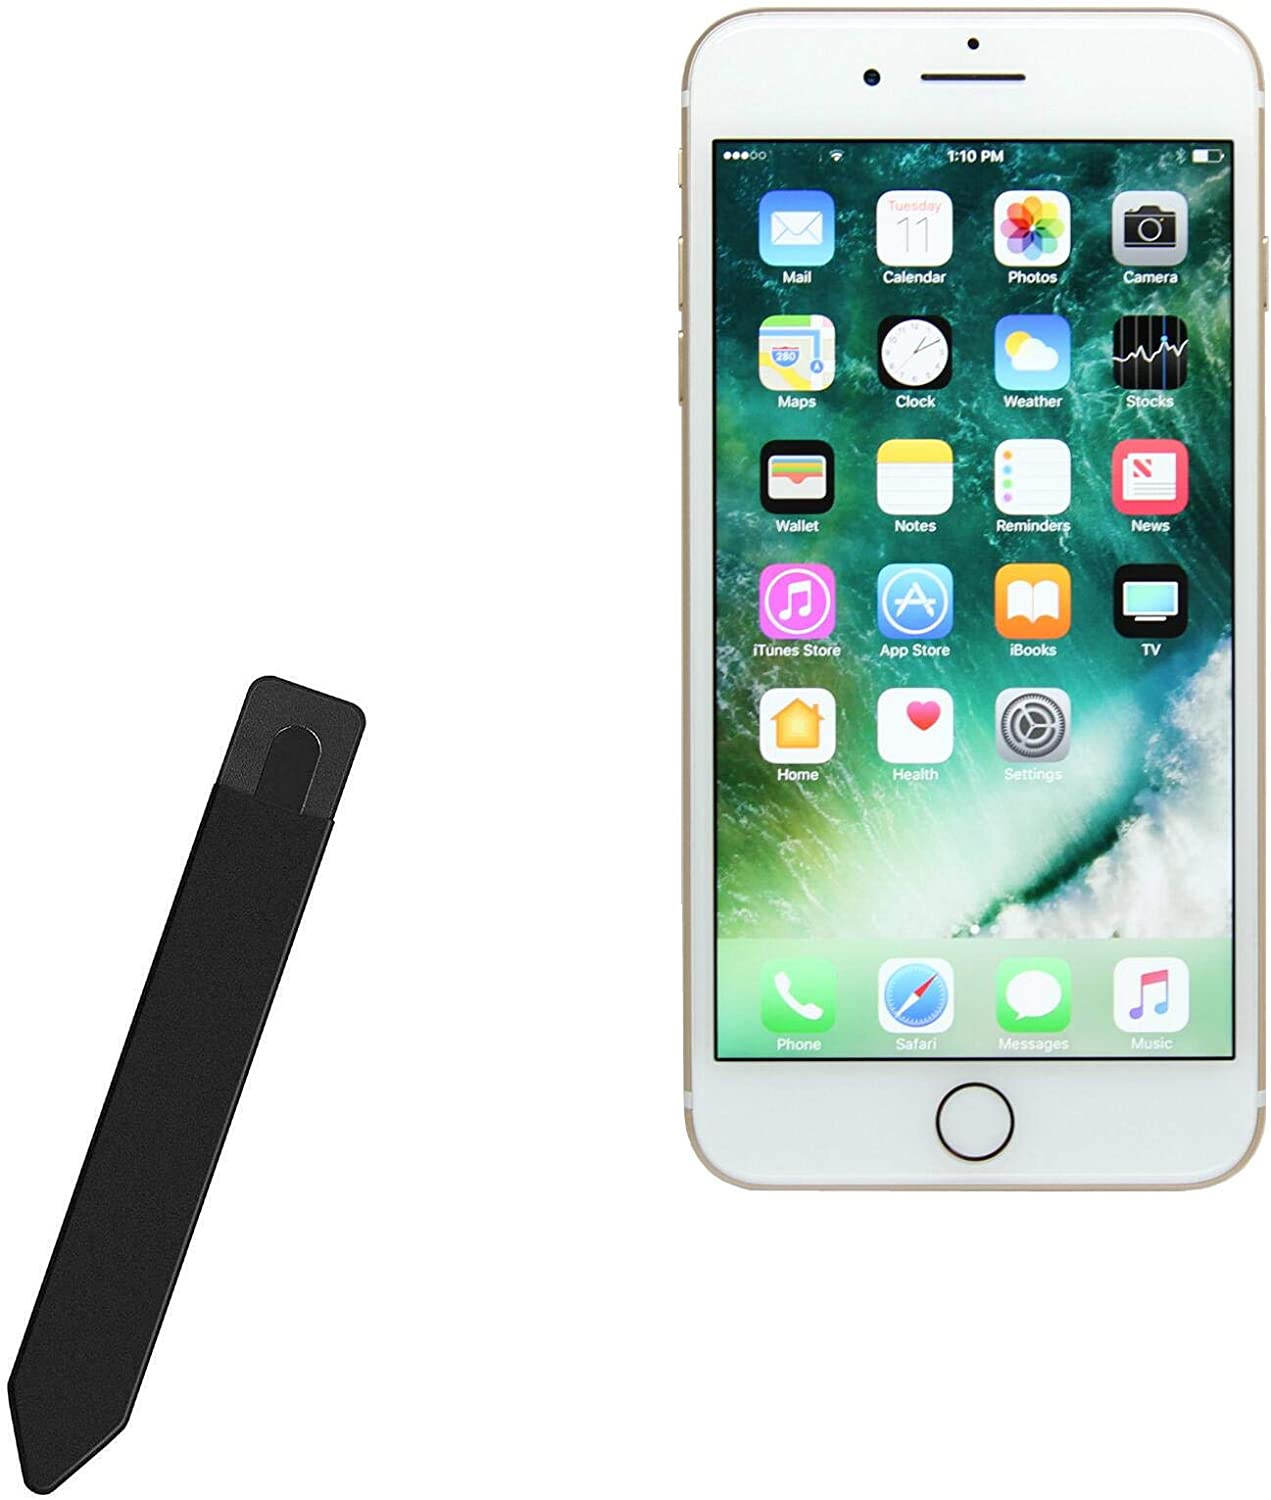 BoxWave Smart Gadget for Apple iPhone 7 Plus [Stylus PortaPouch] Stylus Holder Carrier Portable Self-Adhesive for Apple iPhone 7 Plus - Jet Black